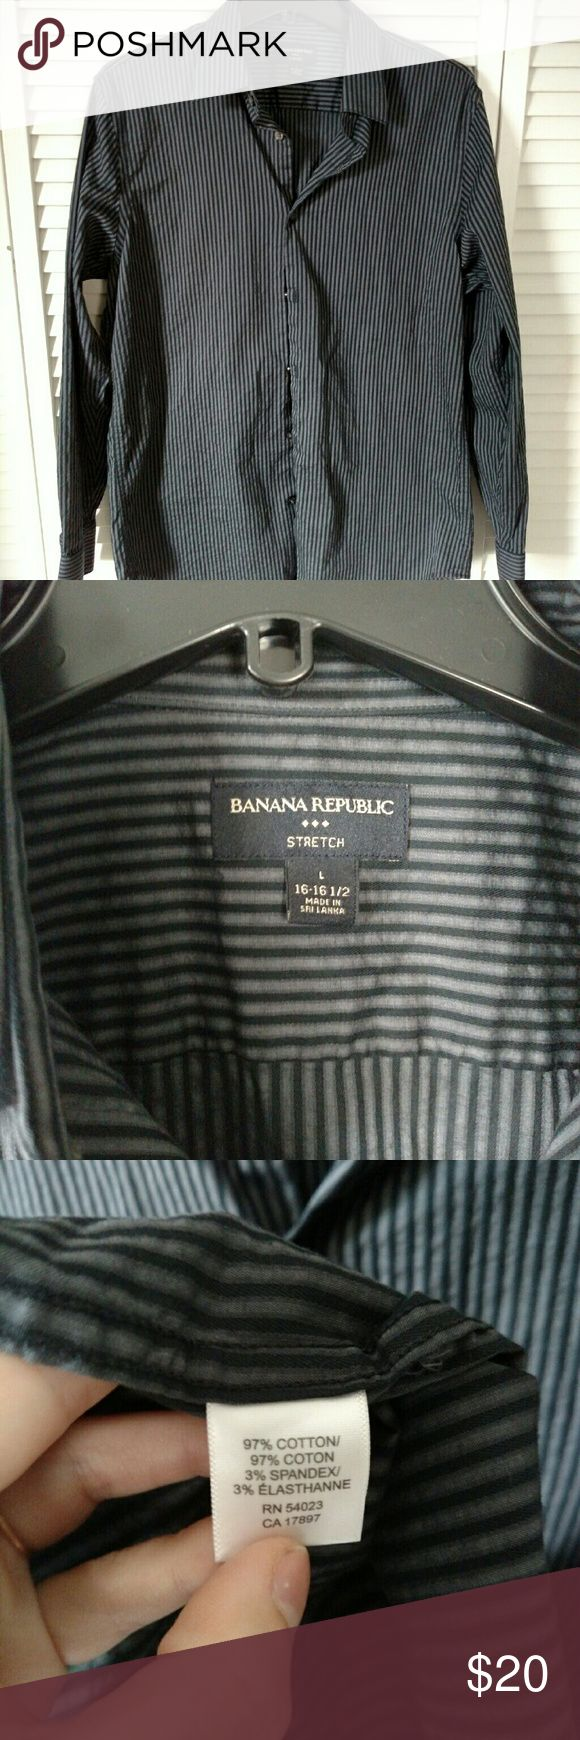 Banana Republic men's casual striped shirt Men's large Banana Republic casual shirt.  No issues, used. Banana Republic Shirts Casual Button Down Shirts